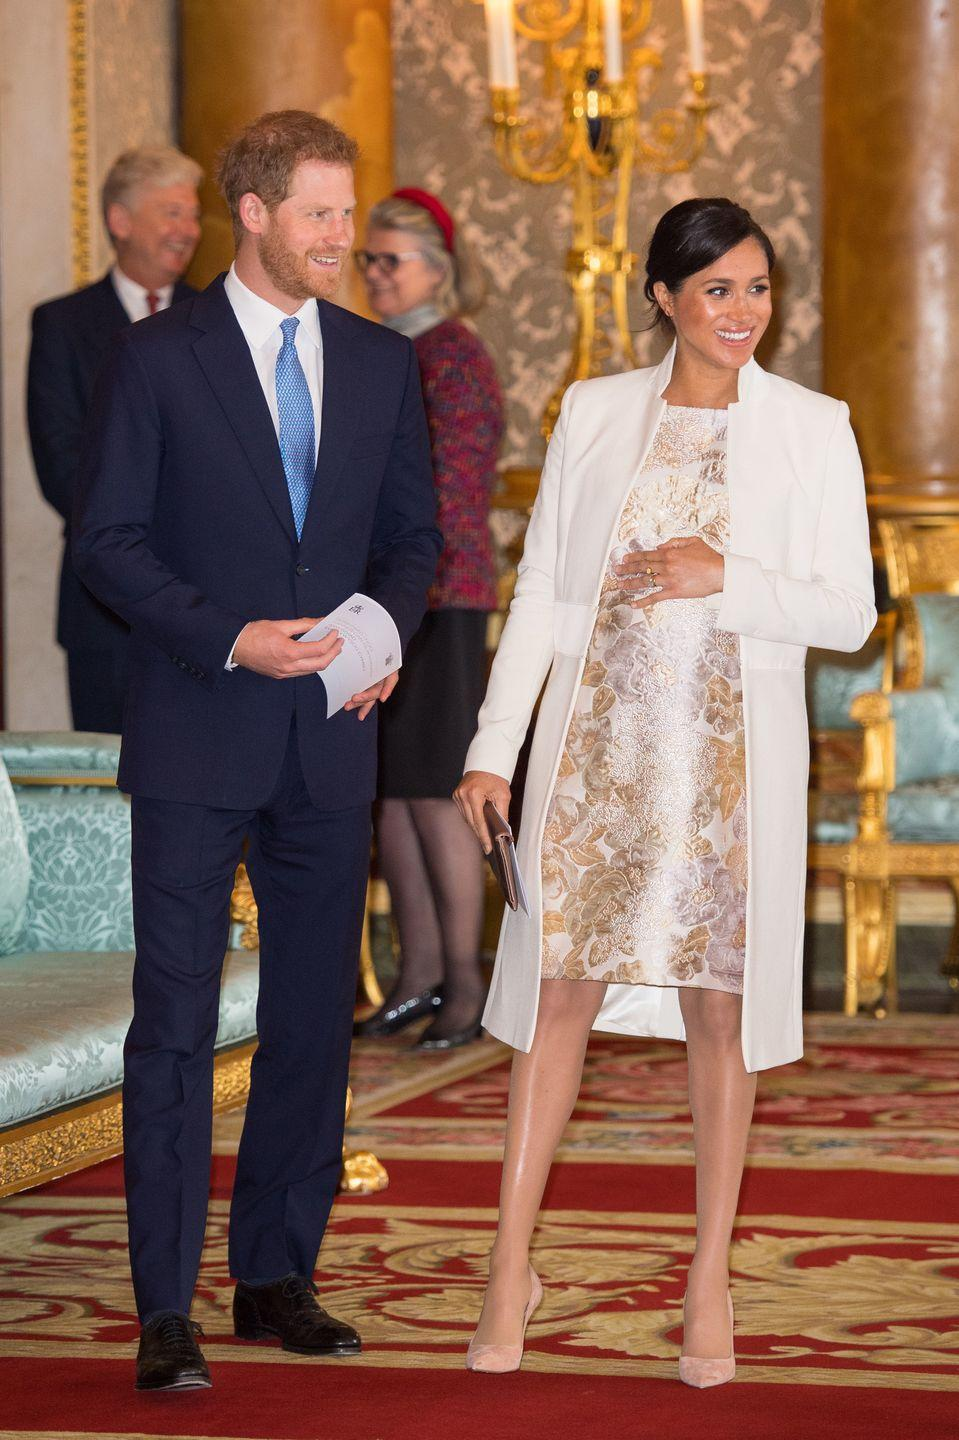 """<p>The Duchess of Sussex paired a metallic brocade dress with a rose gold clutch, nude Paul Andrew heels, and a recycled <a href=""""https://www.amandawakeley.com/us/cream-sculpted-tailoring-coat"""" rel=""""nofollow noopener"""" target=""""_blank"""" data-ylk=""""slk:Amanda Wakely cream coat"""" class=""""link rapid-noclick-resp"""">Amanda Wakely cream coat</a>, for Prince Charles's 50th Anniversary Investiture reception at Buckingham Palace. </p>"""